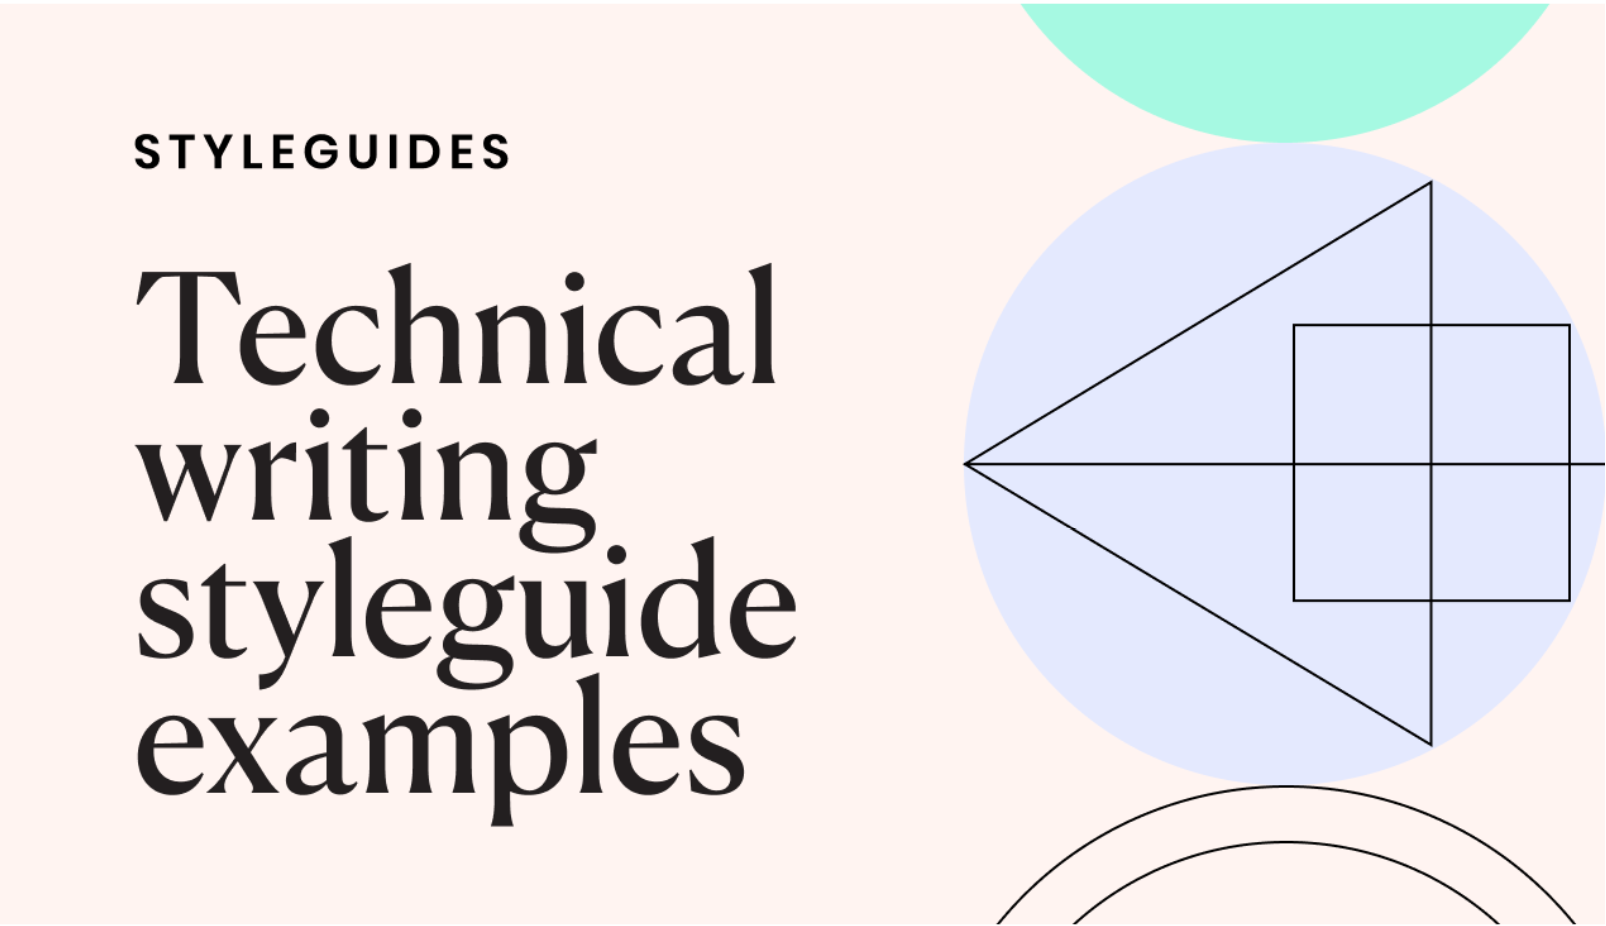 The best-in-class technical writing styeguide examples (and why they work)